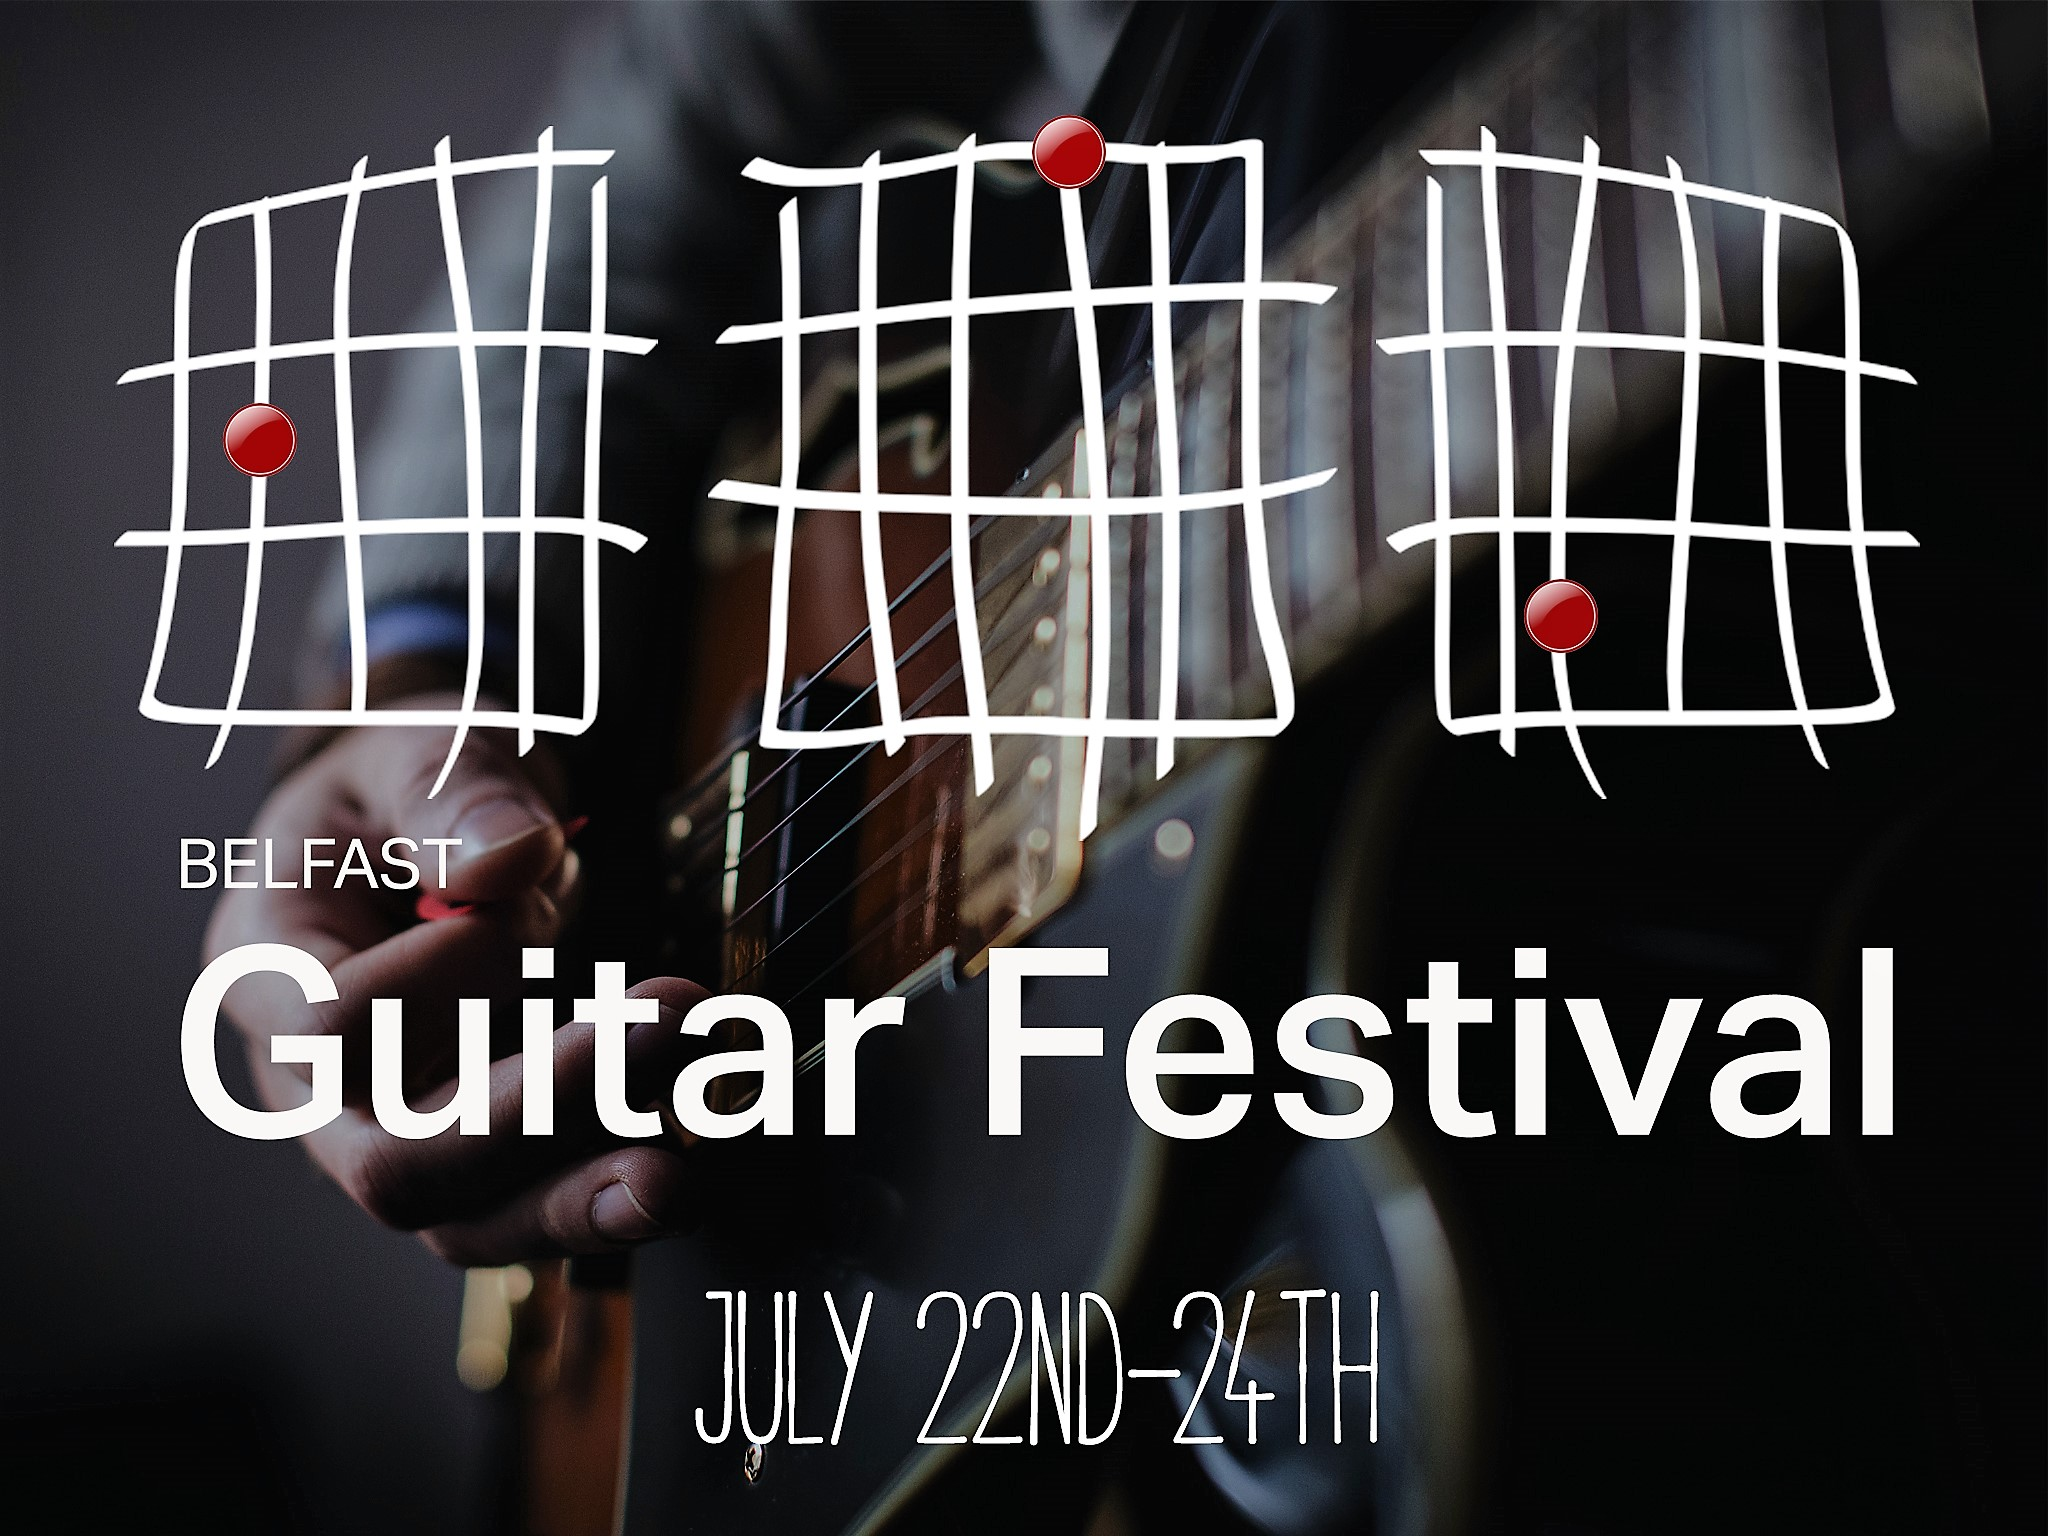 The 2016 Belfast Guitar Festival - Chris Woods Groove, Gary Lutton + Support @ The Black Box